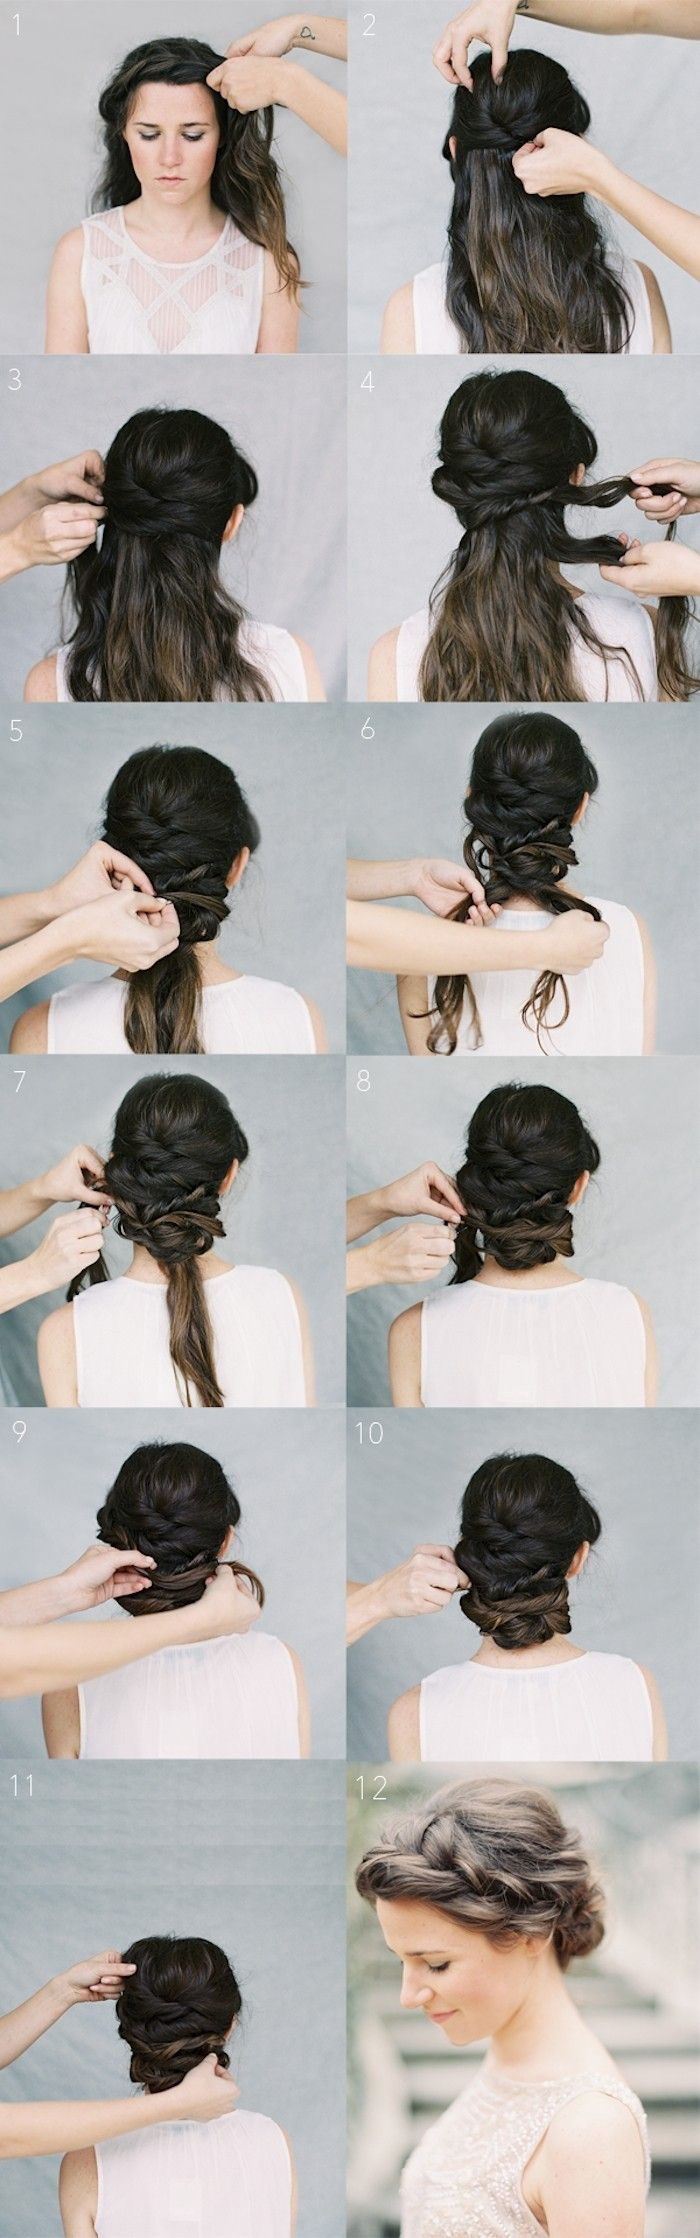 29 best Formal updos images on Pinterest | Wedding hair styles ...